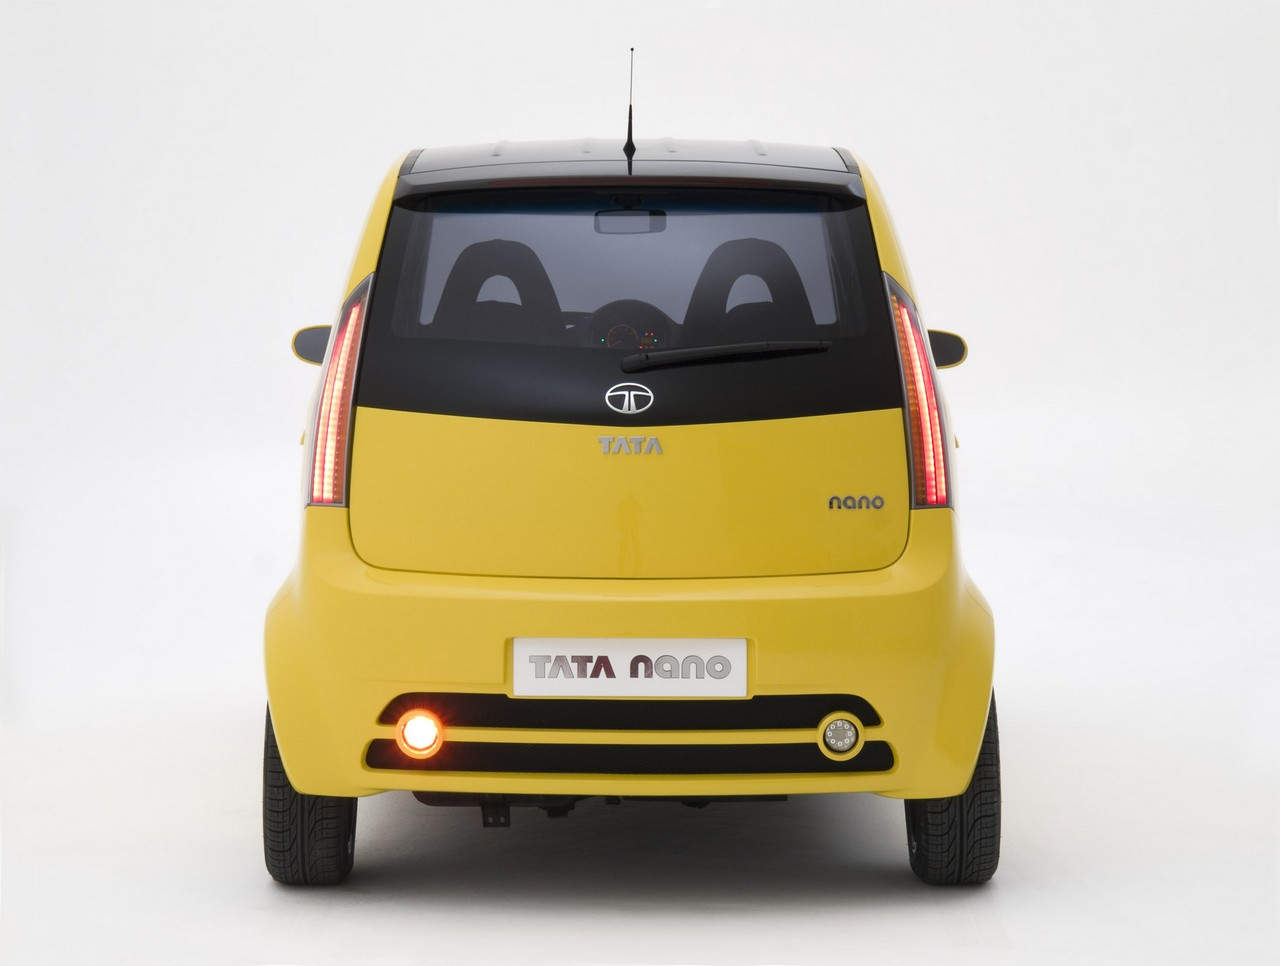 Tata Nano Diesel Will Be Most Fuel Efficient India's